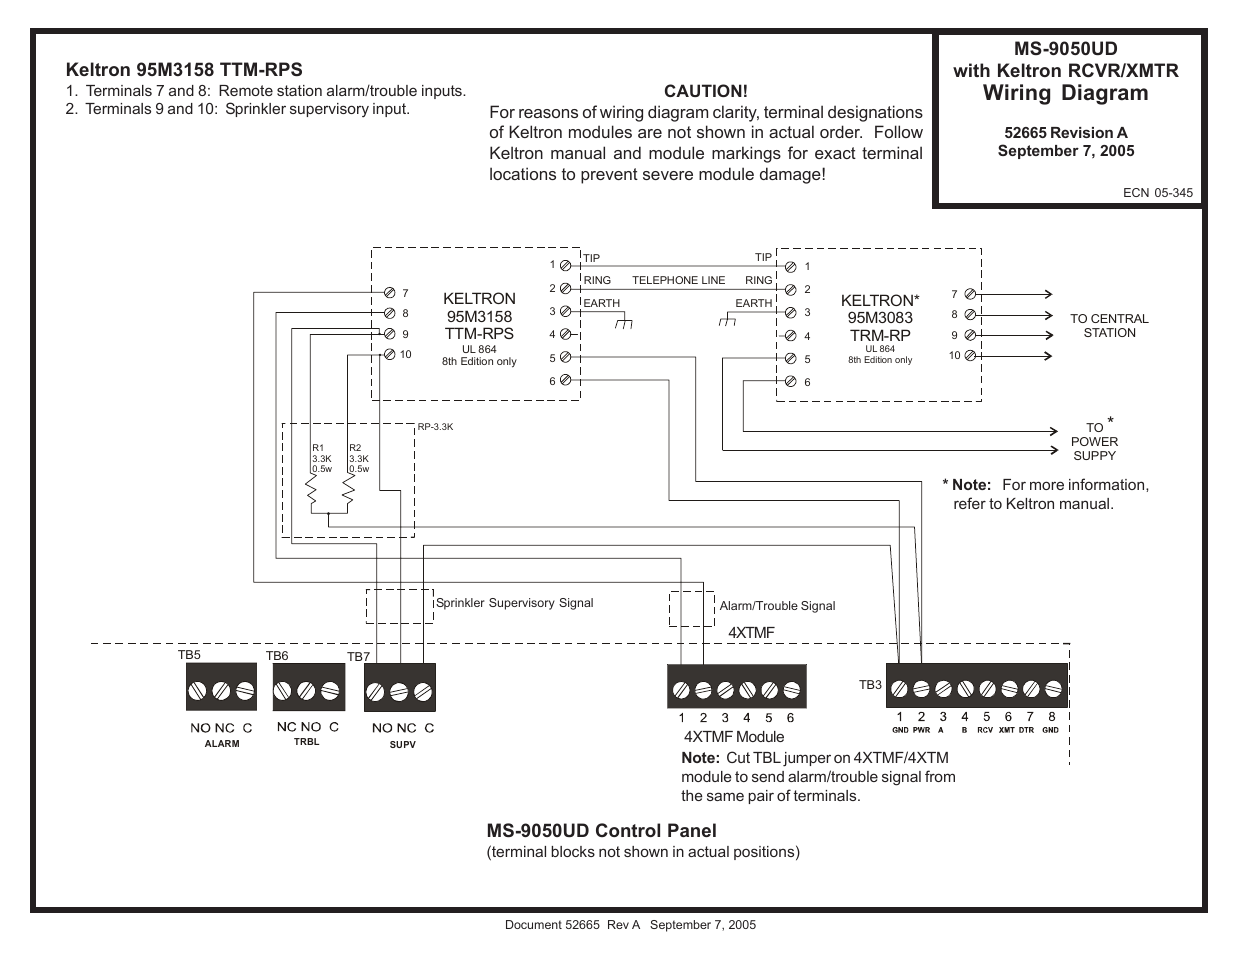 Black Magic Fan Wiring Diagram 30 Images For Nitrous Fire Lite Ms 9050ud With Keltron Transmitter Receiver Page1 Flex A